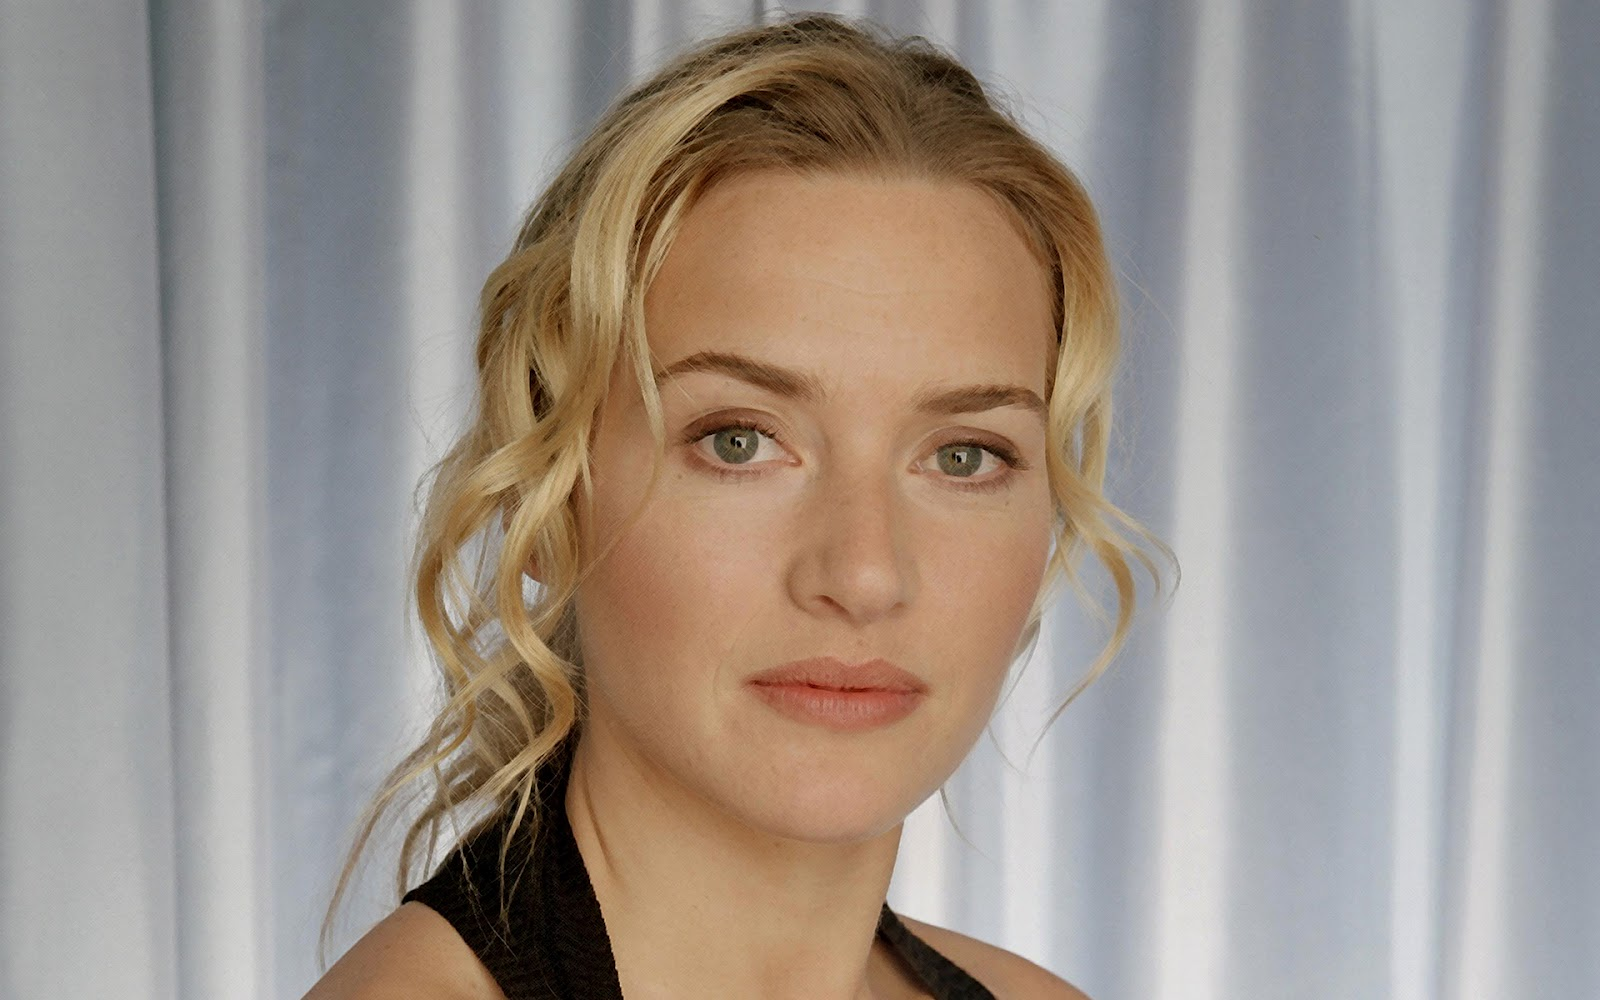 Kate Winslet Latest Wallpapers | Kate Winslet Wallpapers Mischa Barton Friends